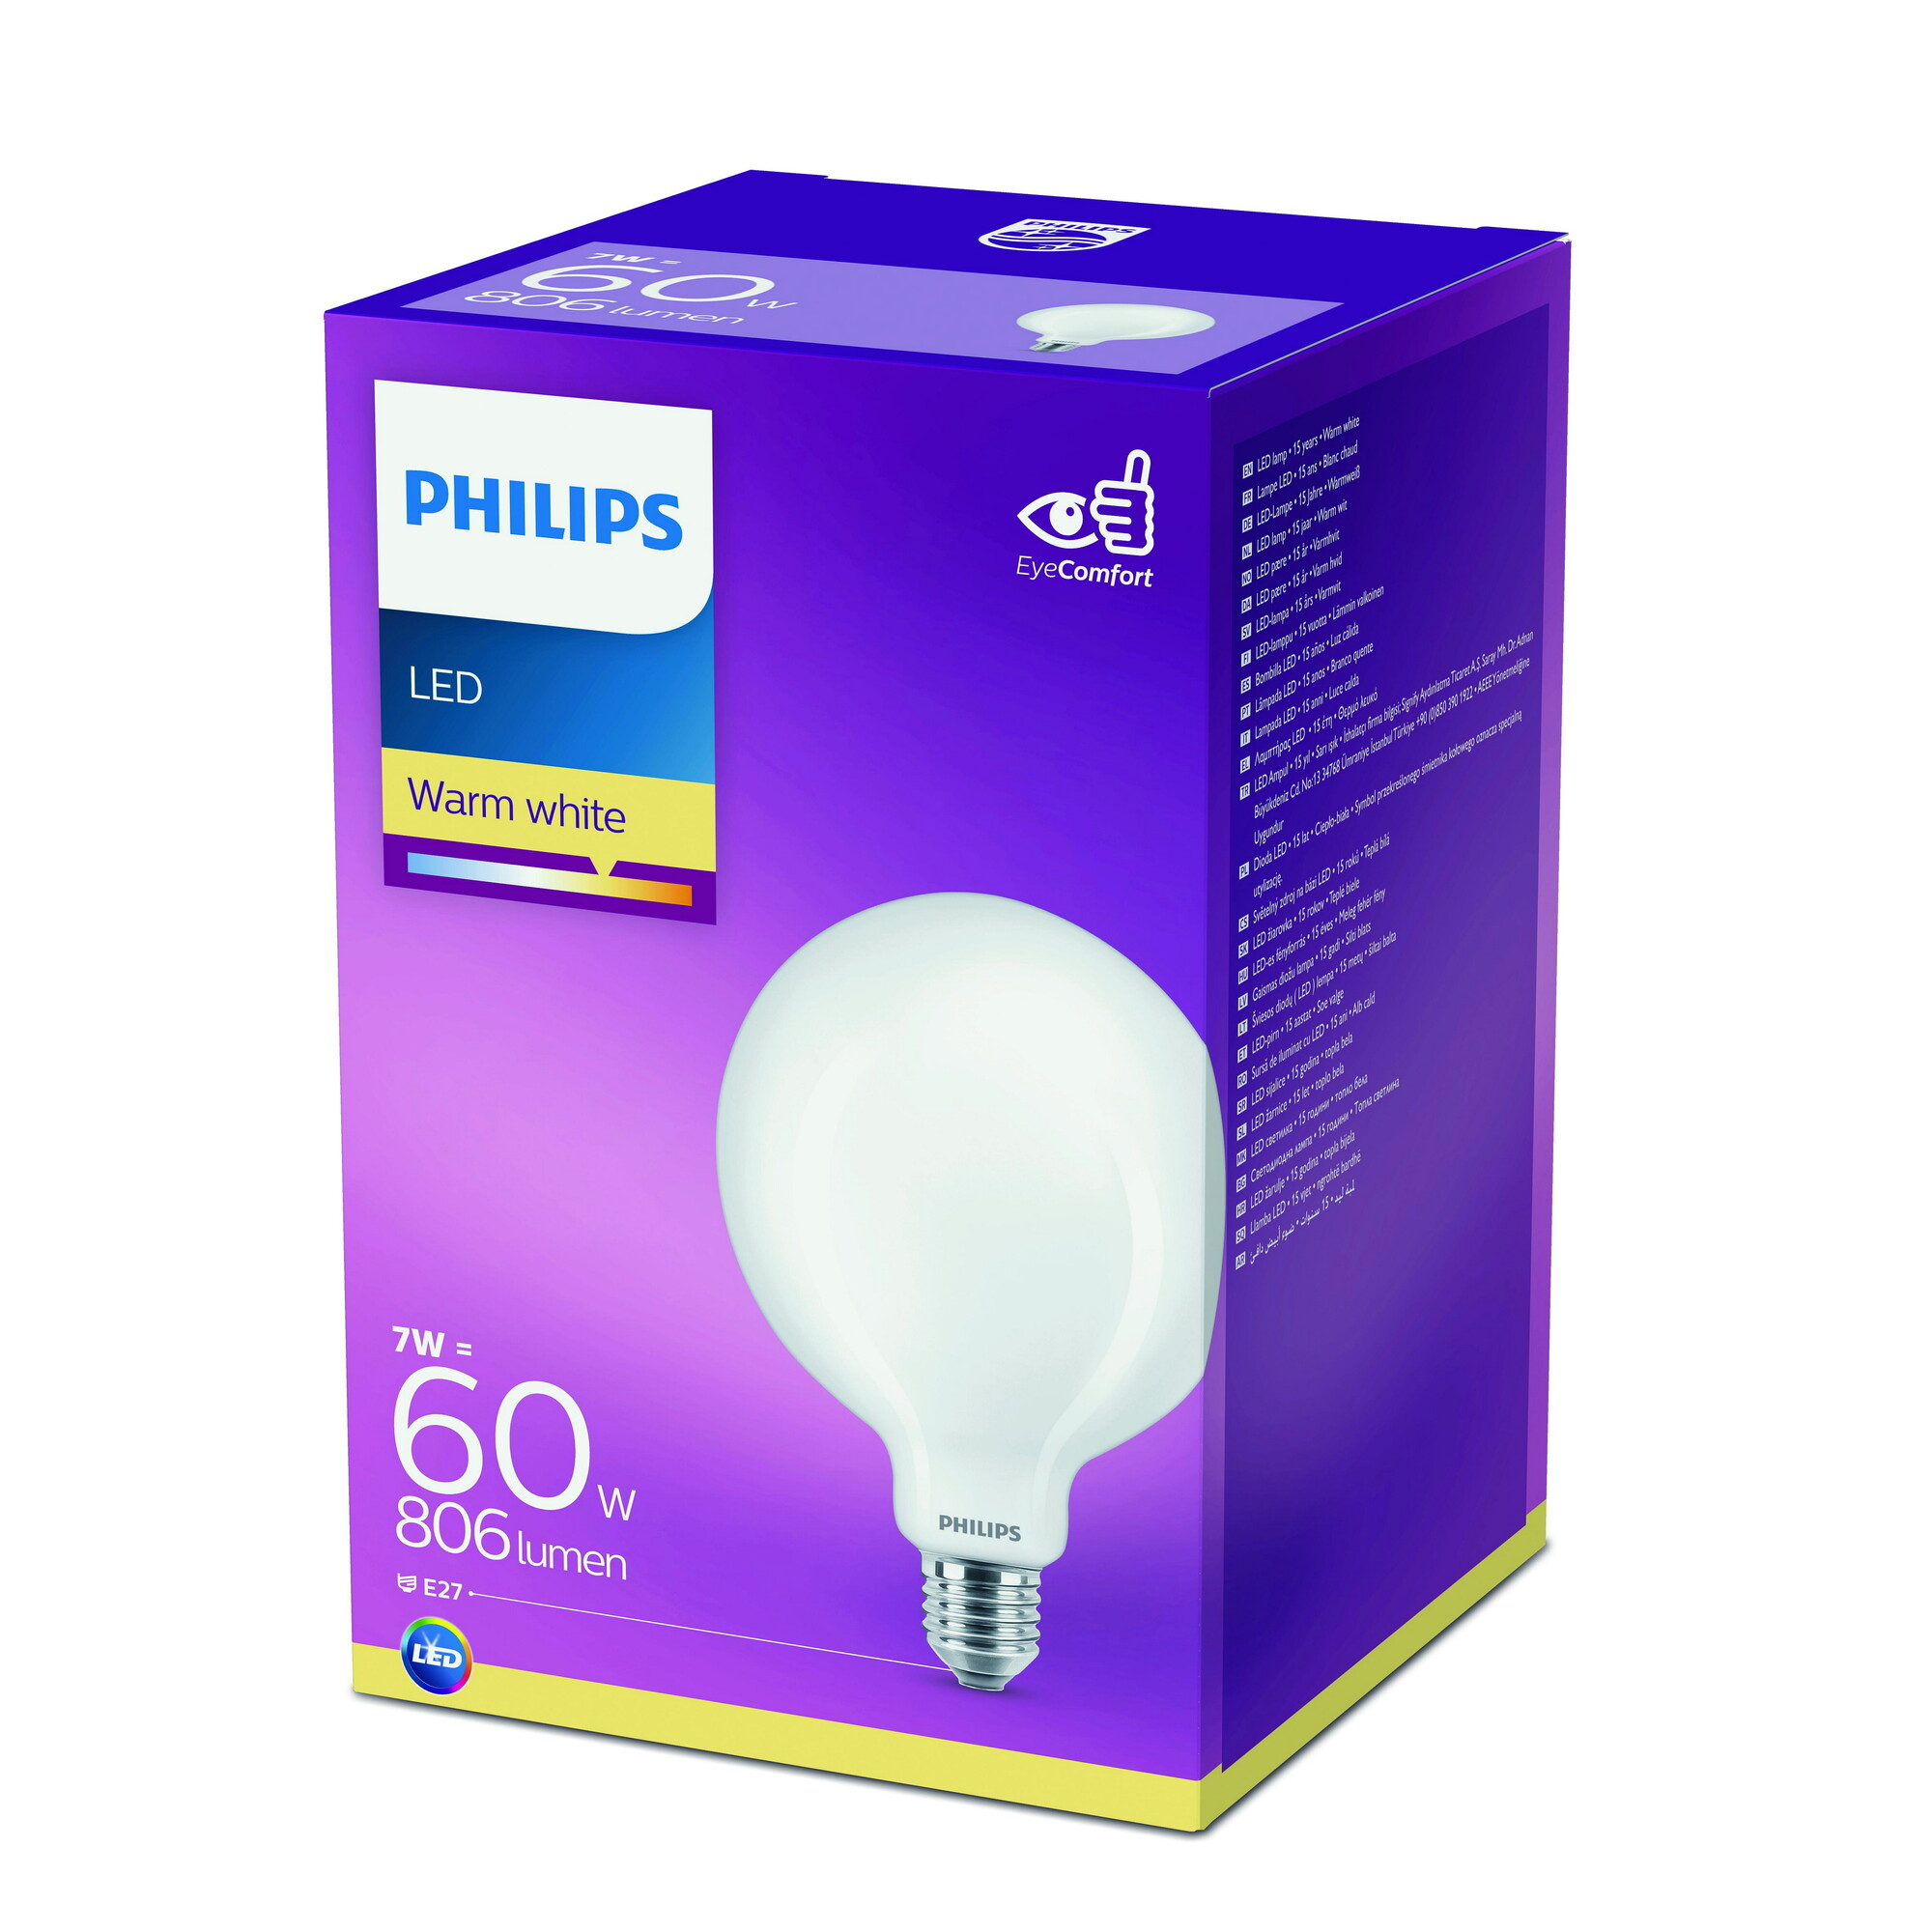 Philips LED classic E27 7W 806lm 2700K Globe Frosted